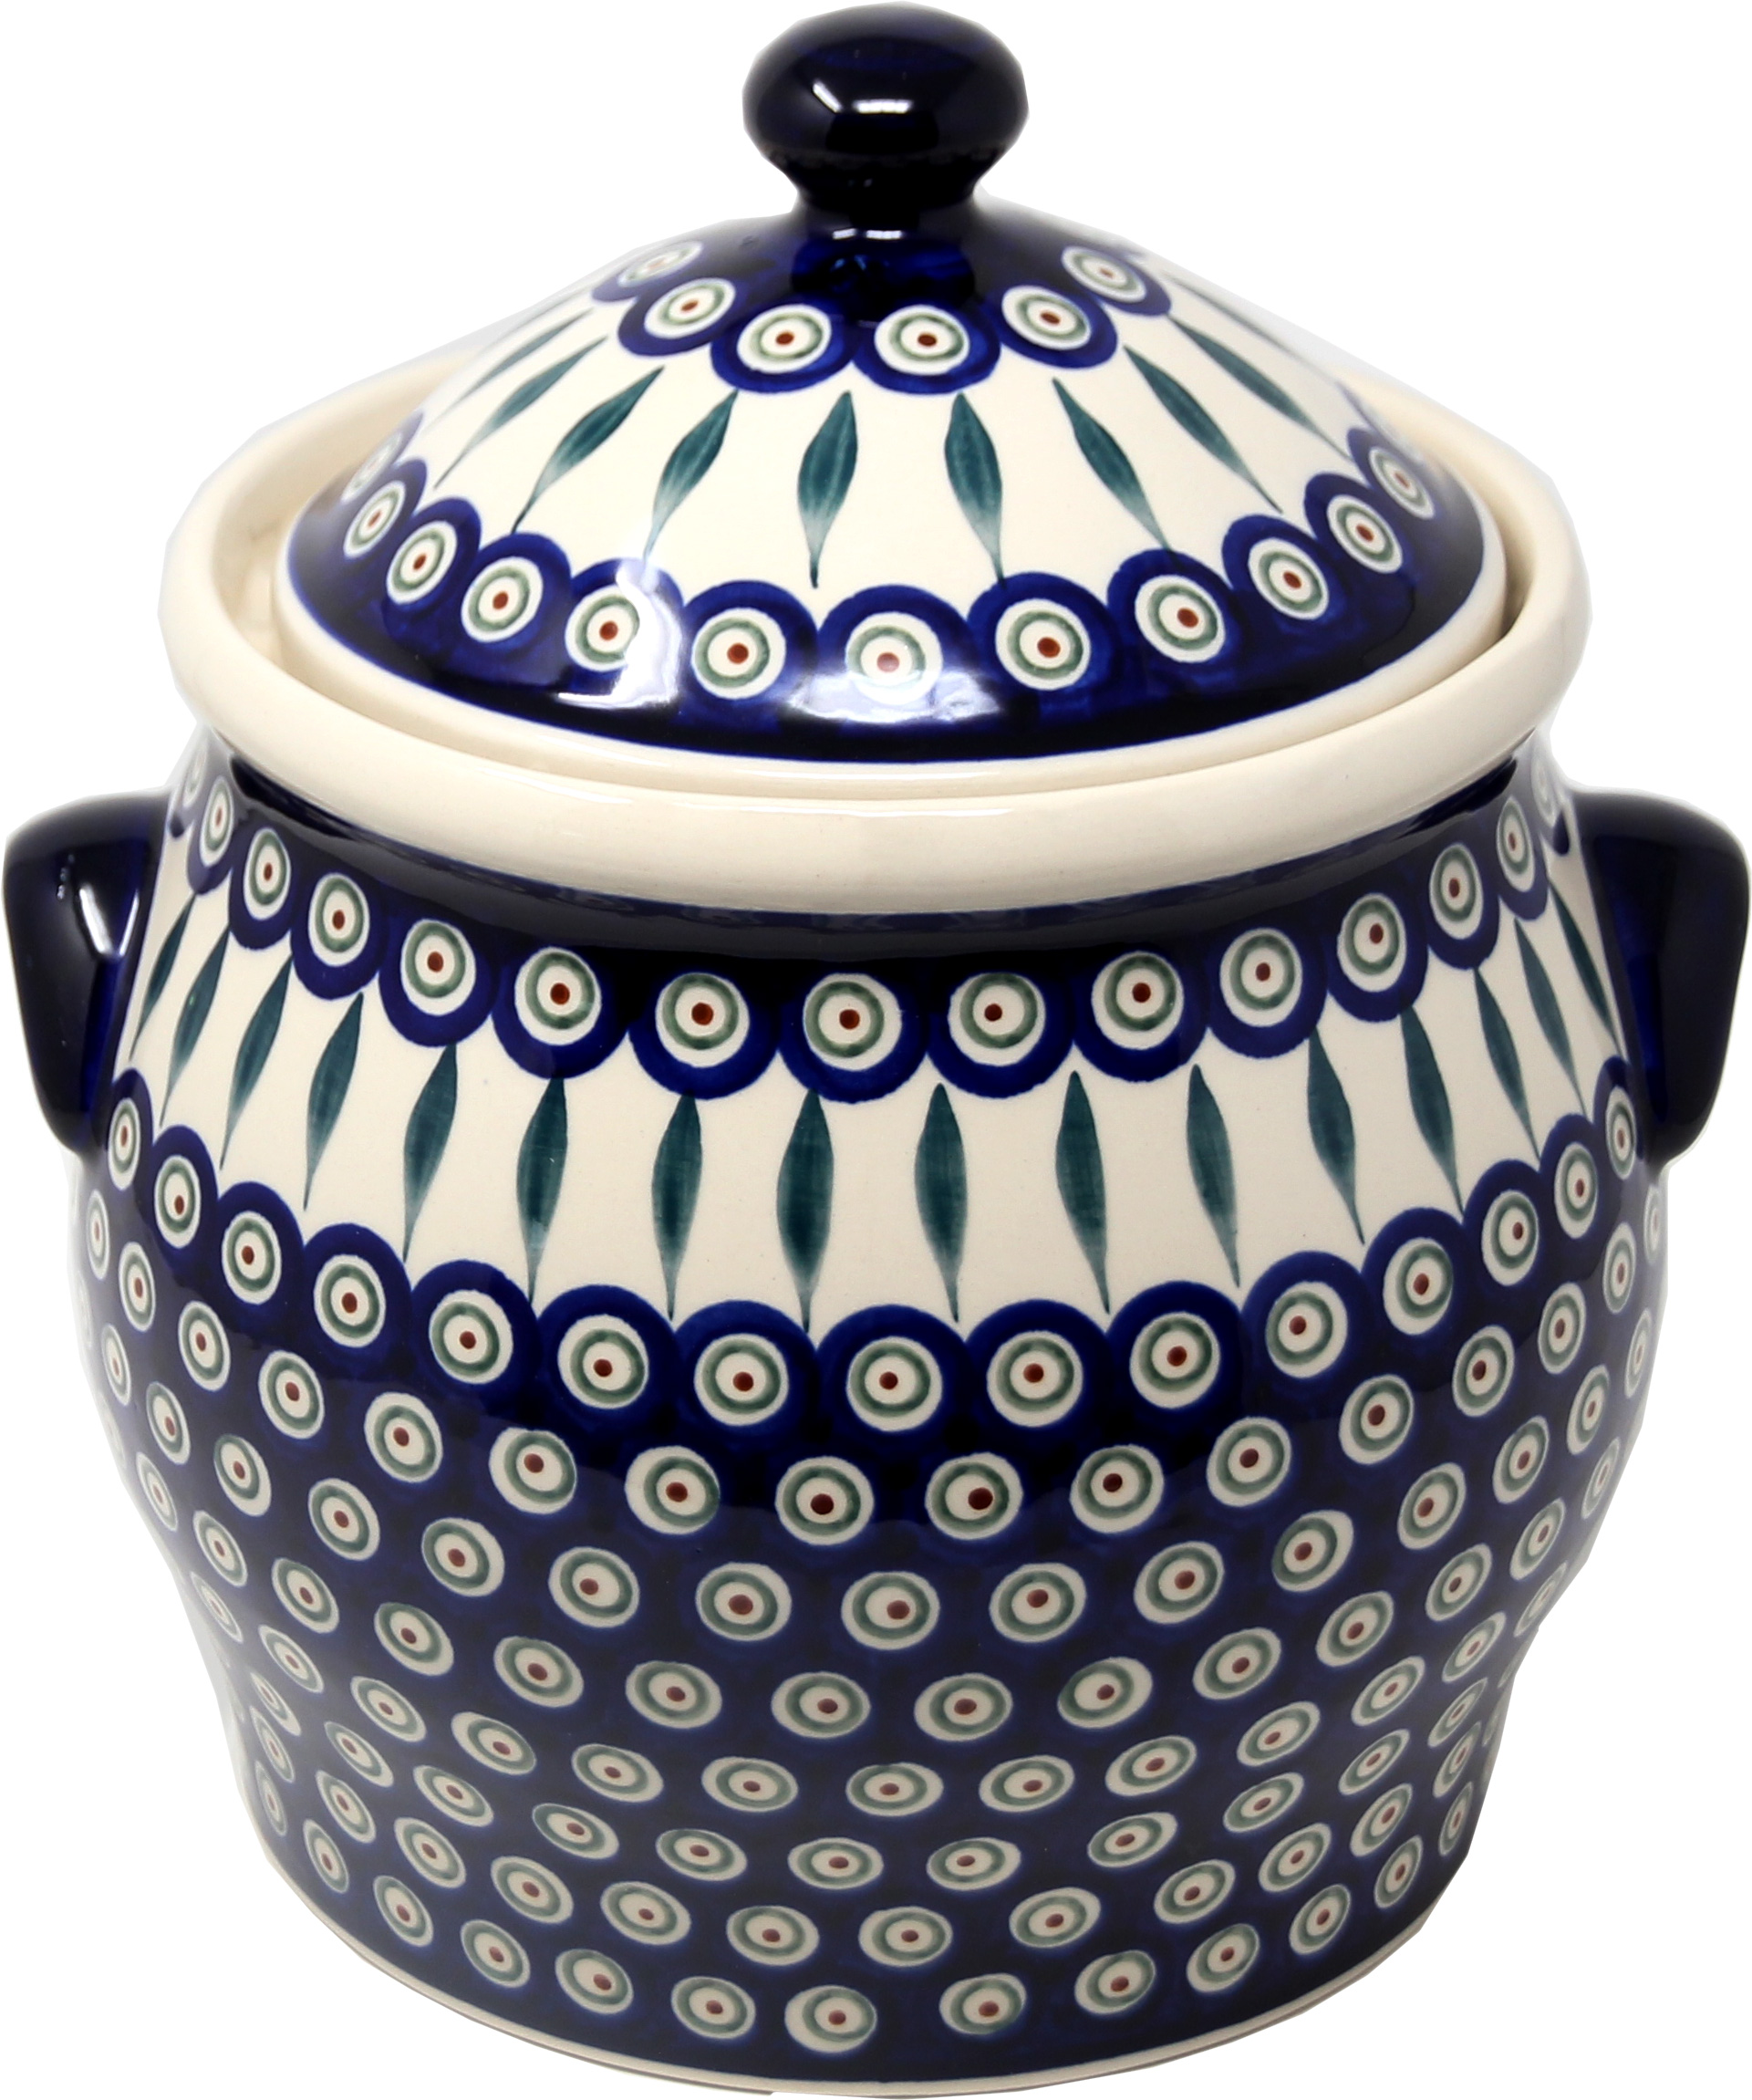 Extra Large 6 Quart Polish Pottery Cookie Jar / Canister in Peacock Pattern from Zaklady